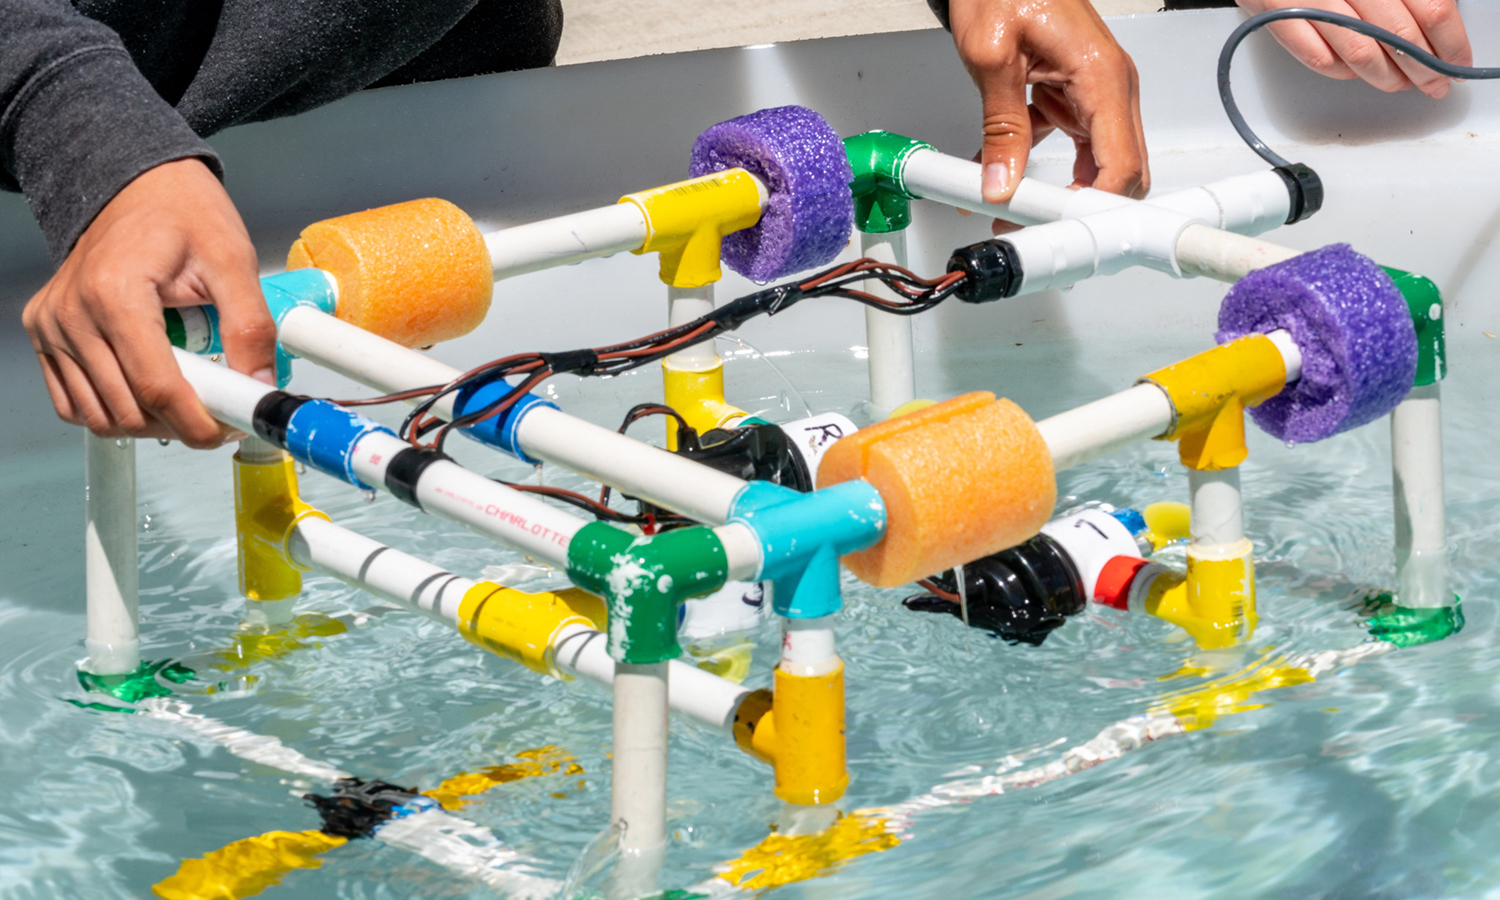 Hands immerse a remotely operated underwater device into a tank of water to test it during a day camp.